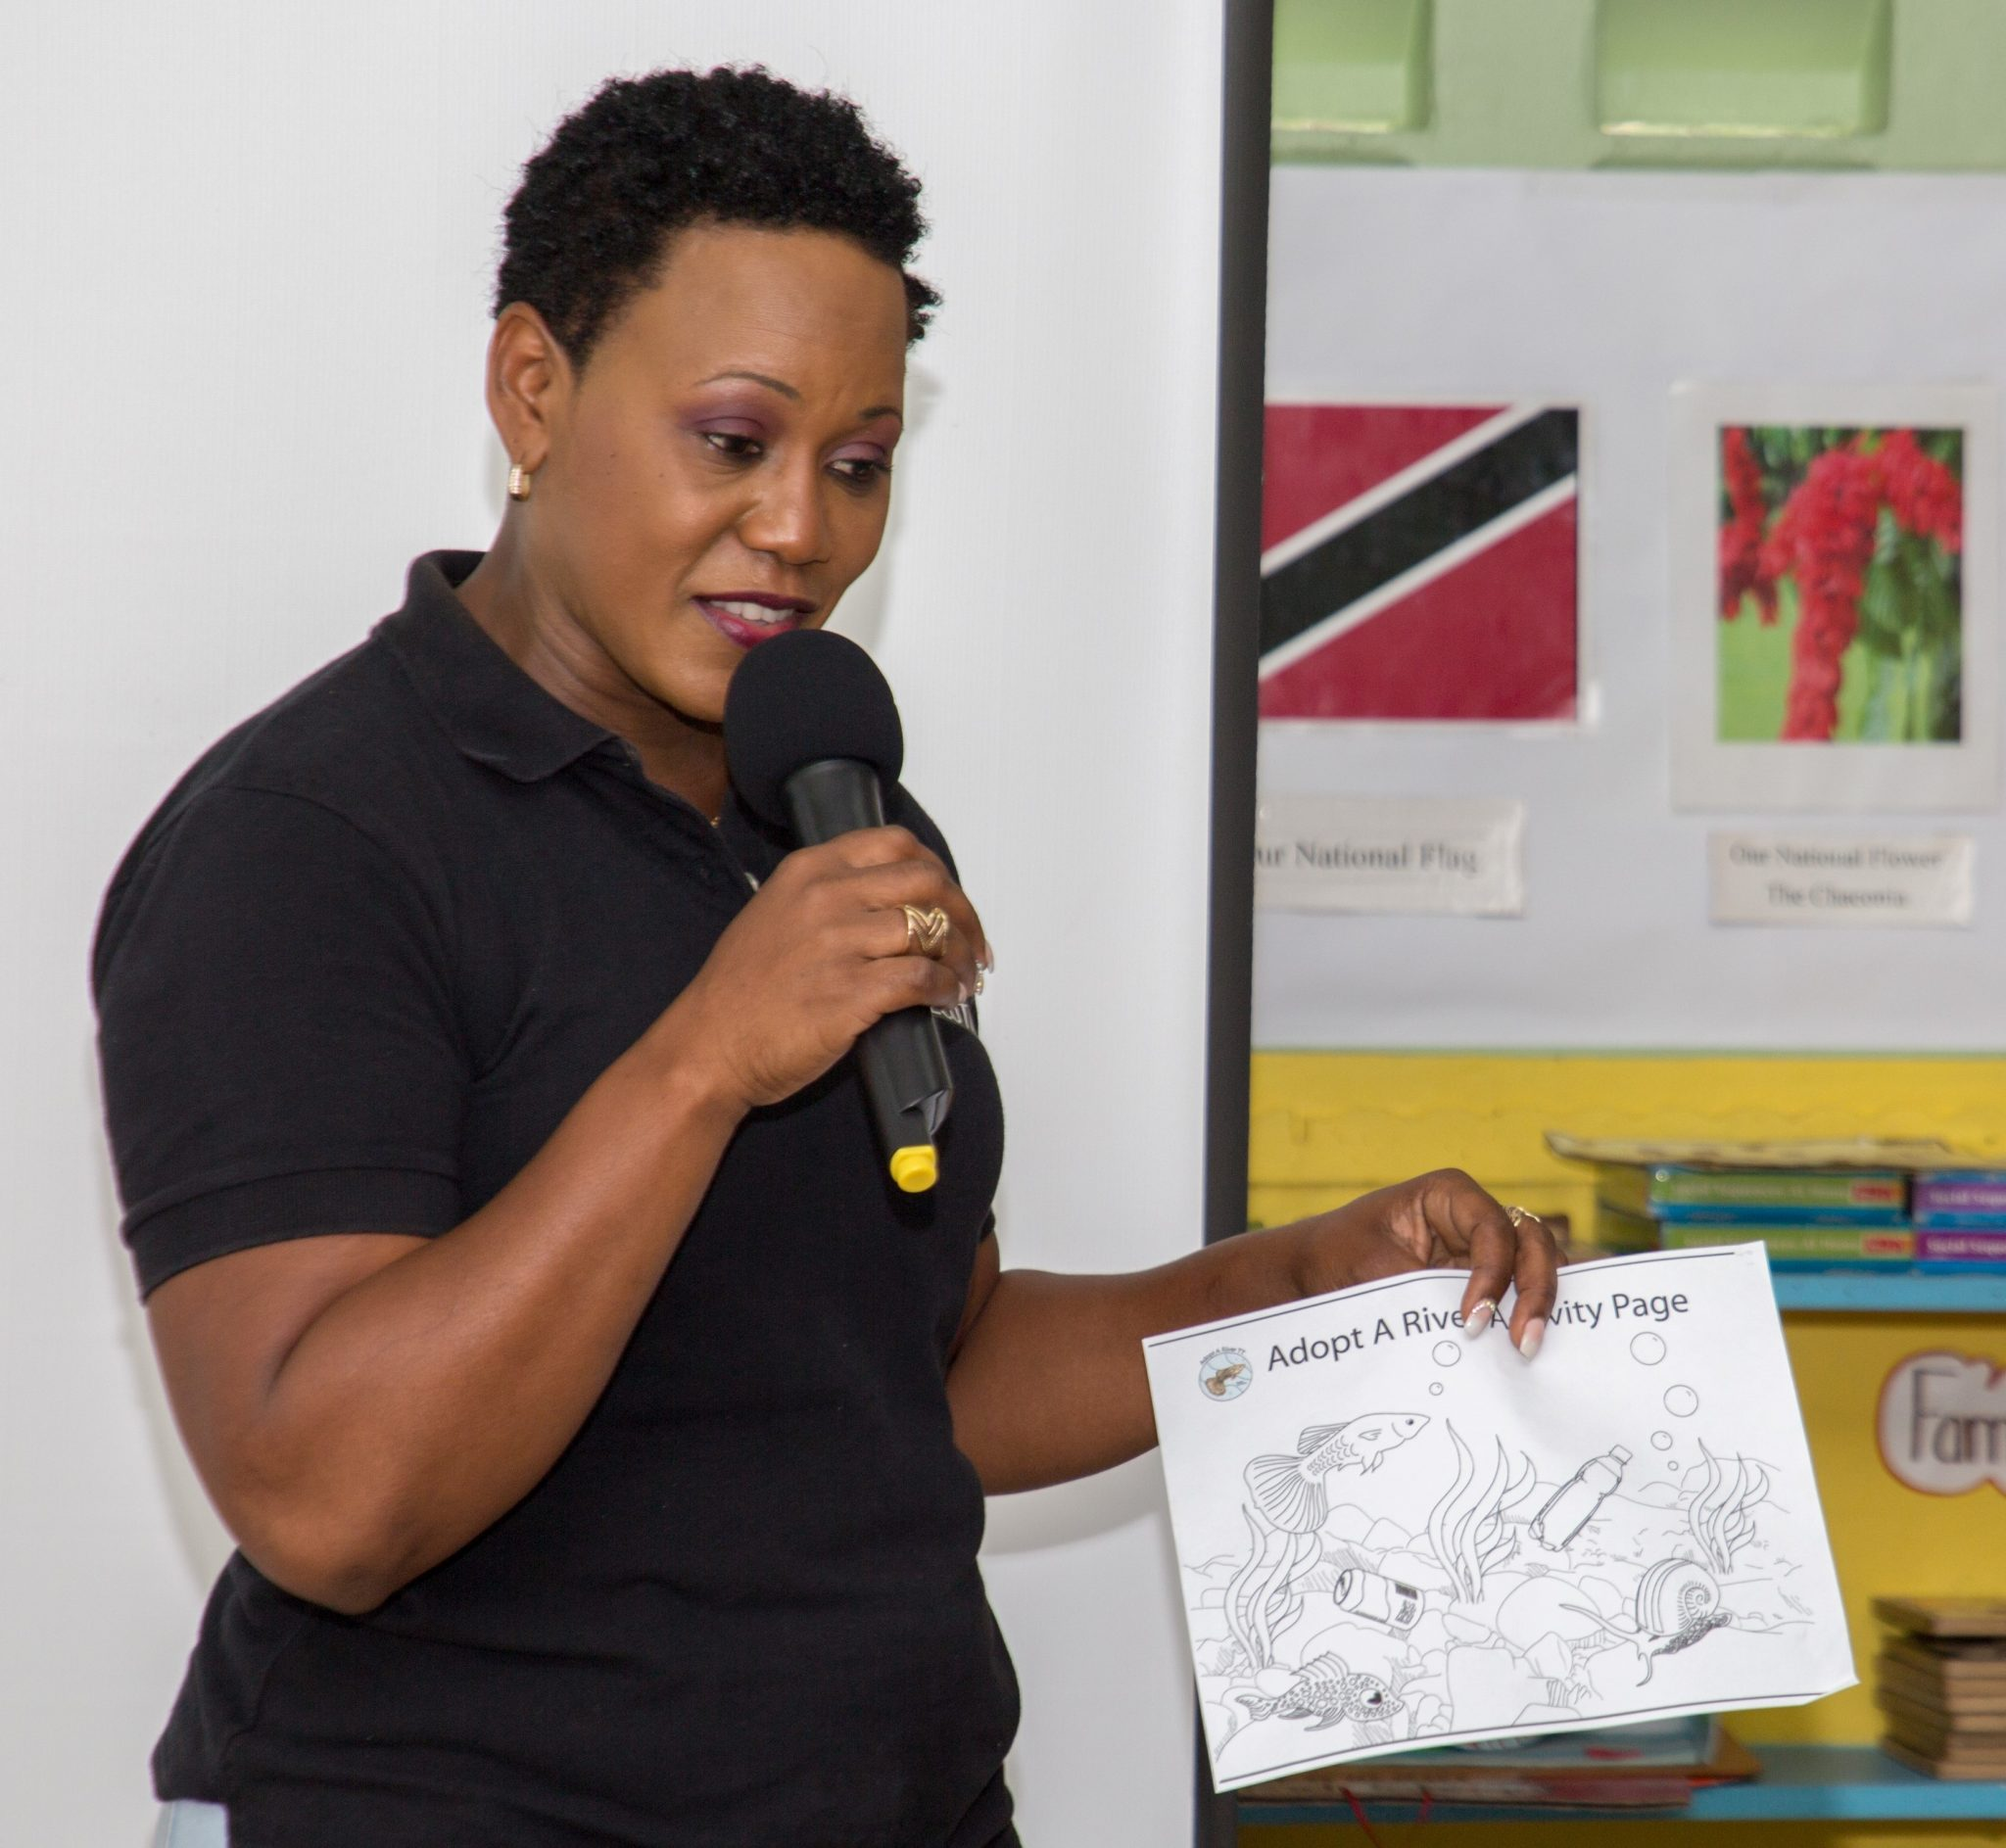 Roslyn George of Cashew Gardens Community Recycling Programme shows the children their activity sheet during her presentation.